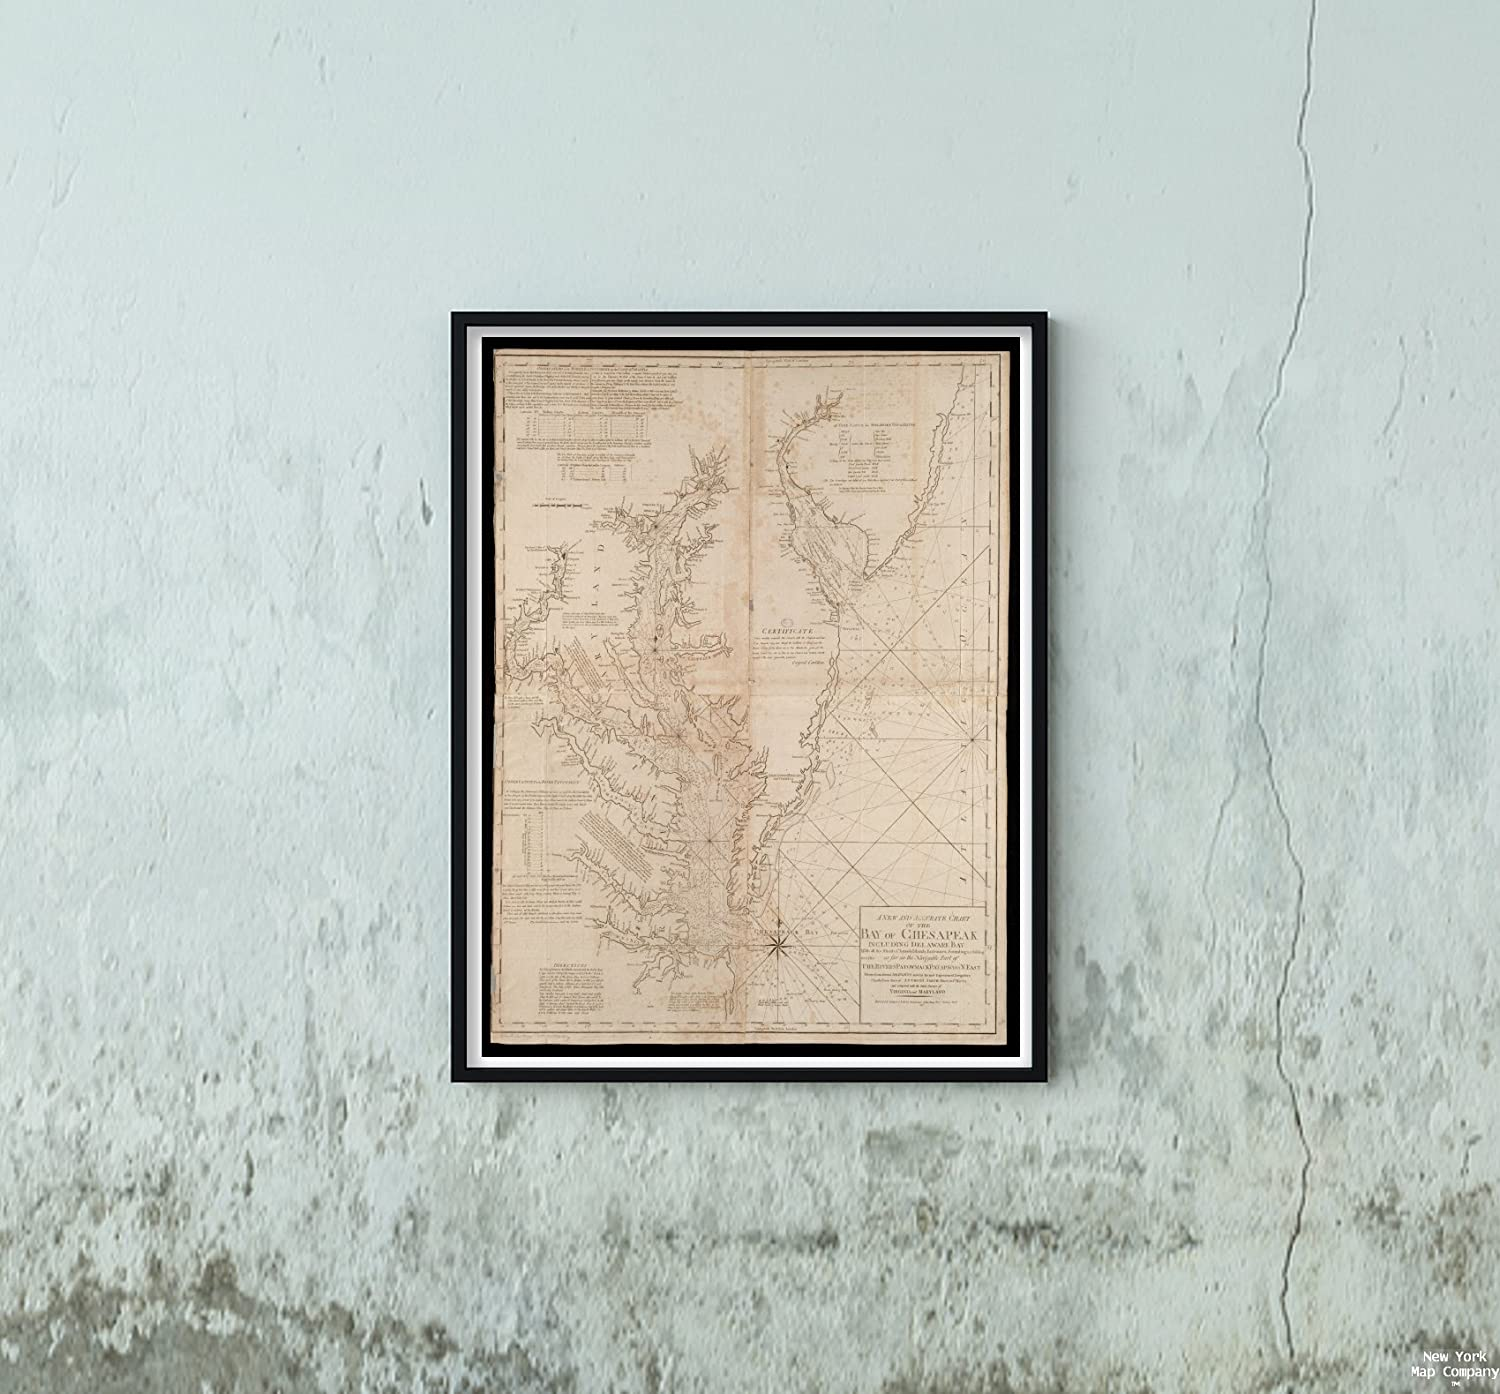 1794 Map Delaware Bay A New and Accurate Chart of The Bay of Chesapeak Including Delaware Bay with a|Vintage Fine Art Reproduction|Ready to Frame